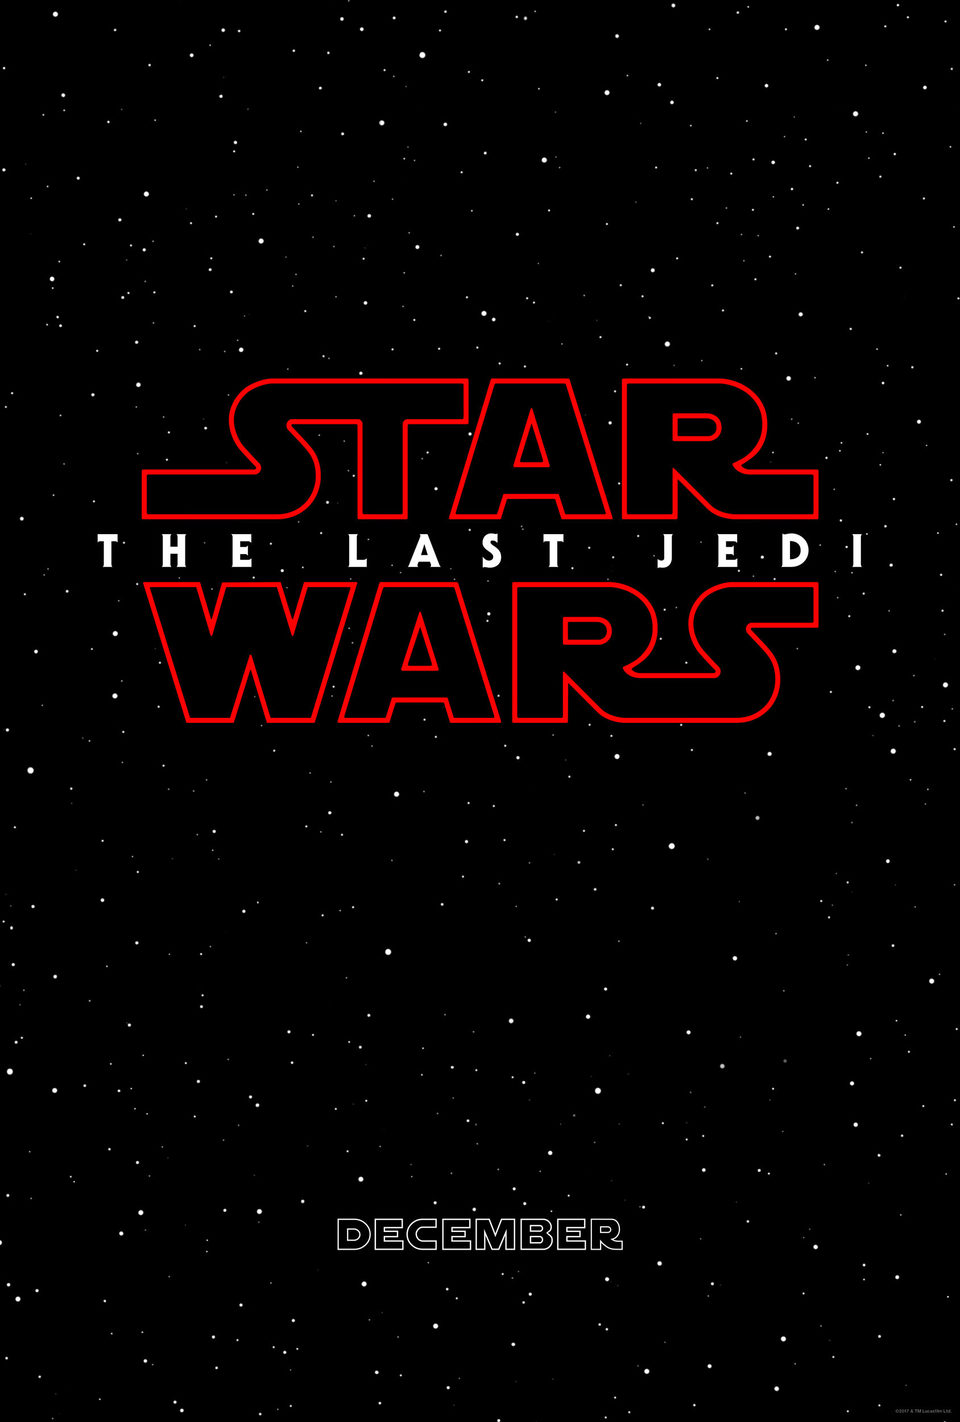 Teaser con título poster for Star Wars: The Last Jedi